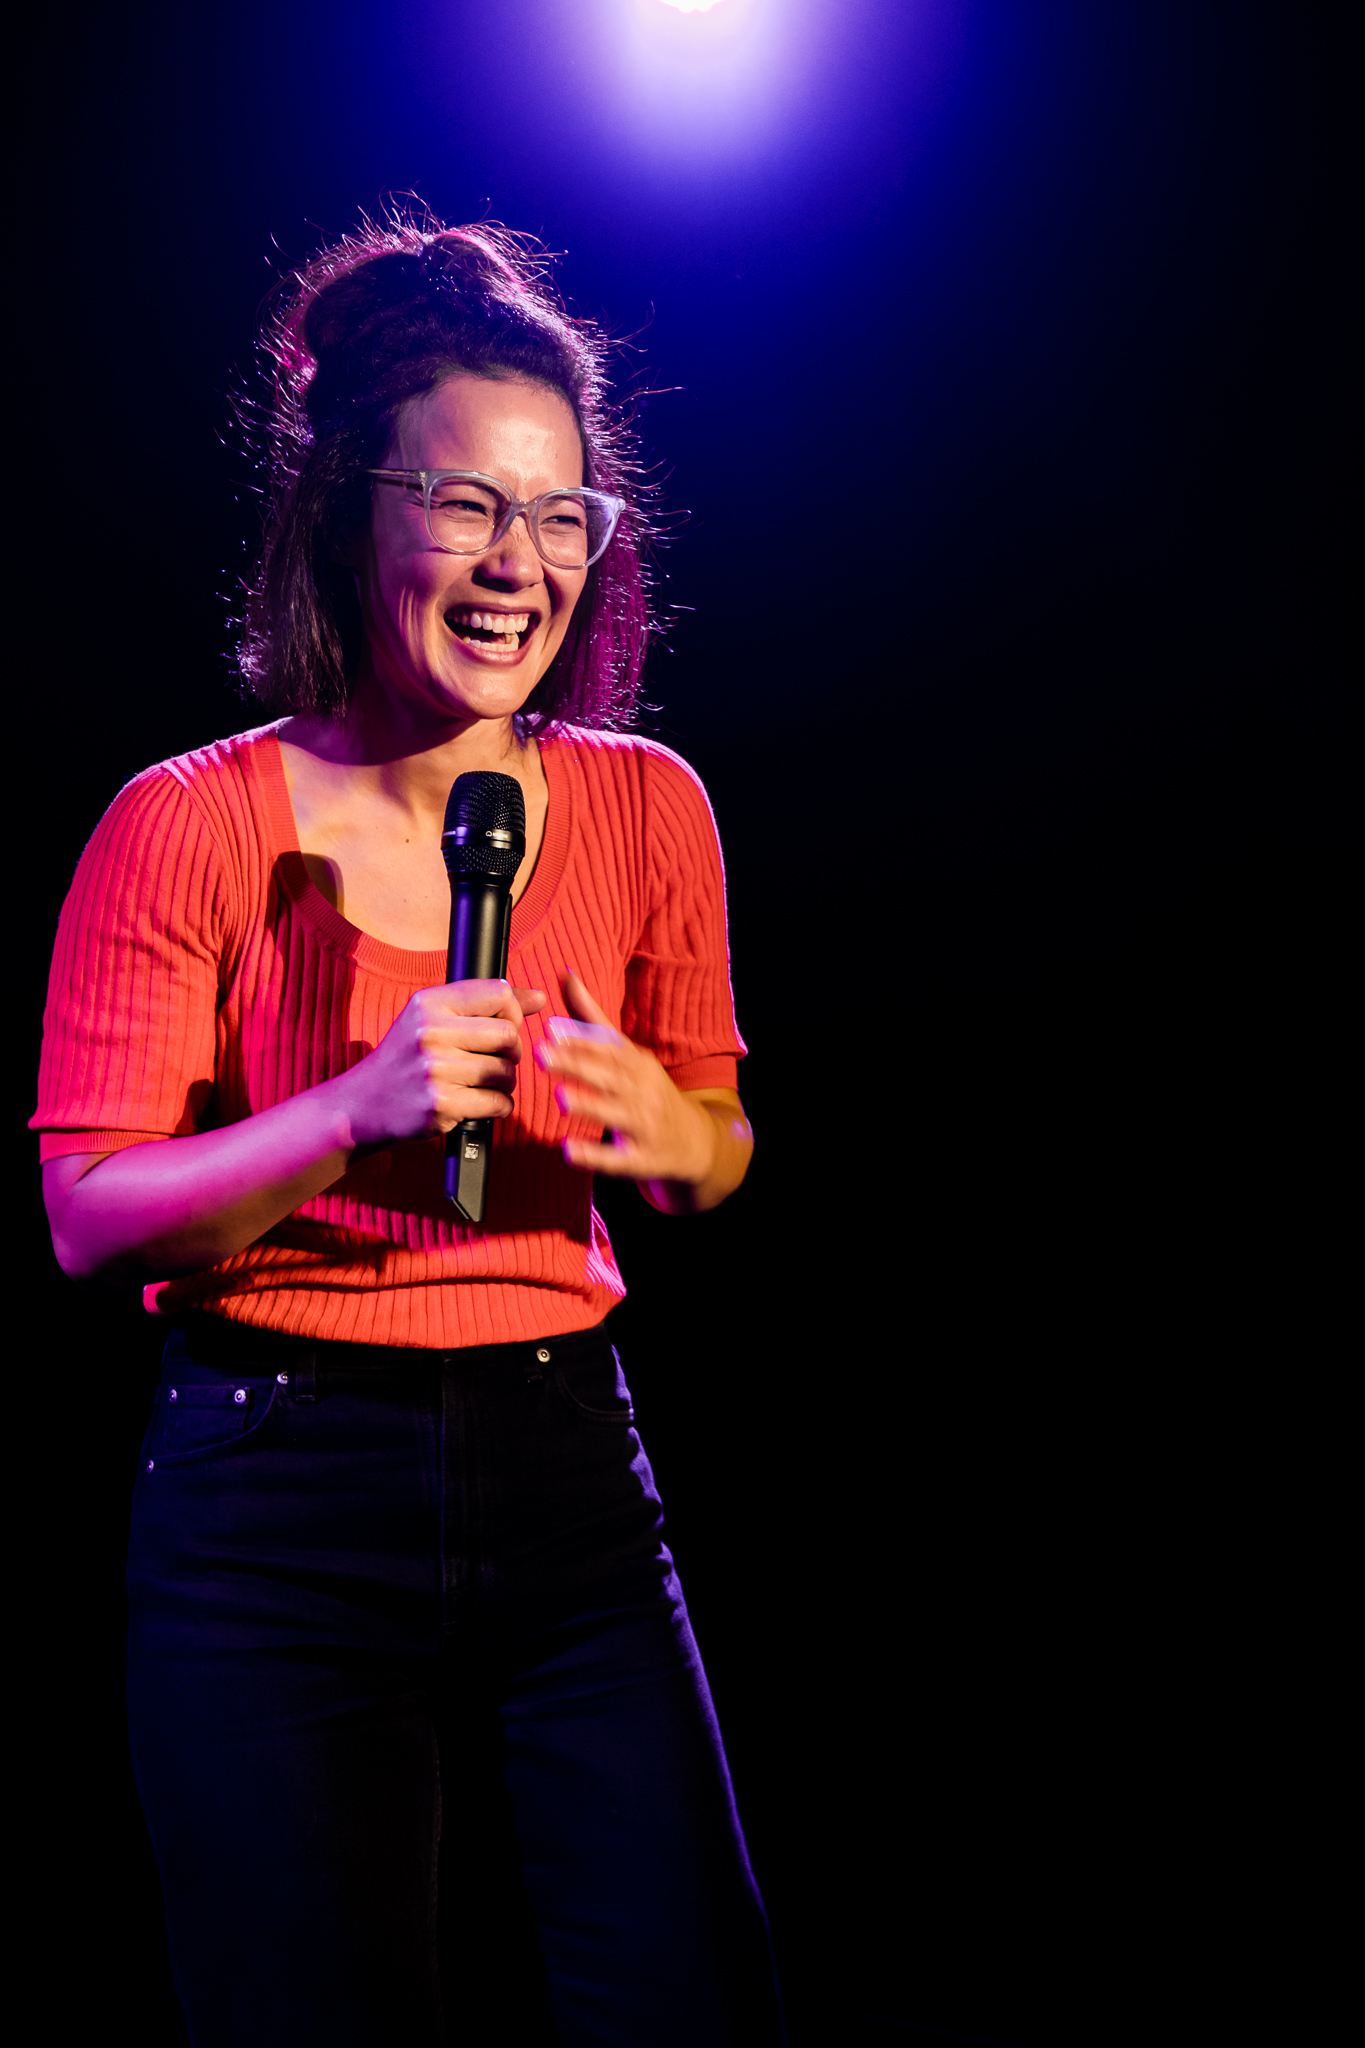 A smiling 30-something Asian Australian woman is on stage in a dark theatre. She's wearing glasses and holding a microphone.